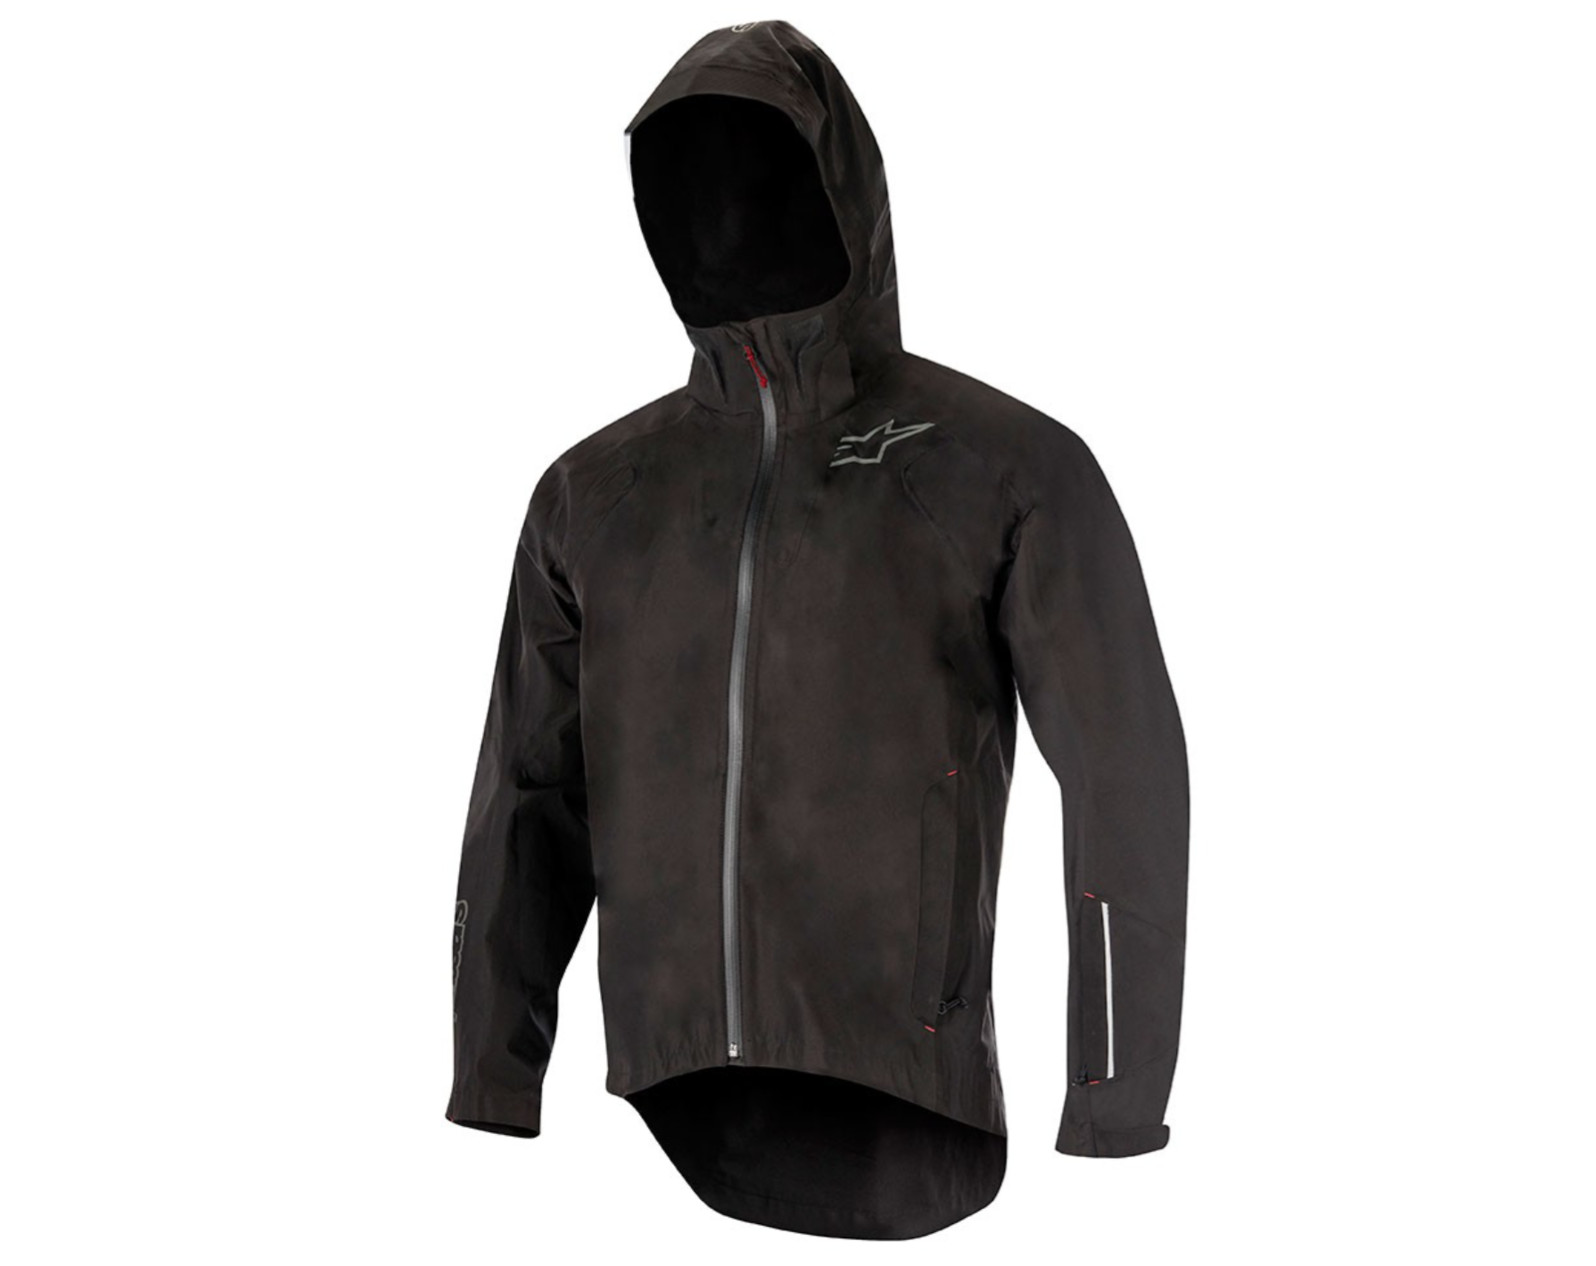 Alpinestars All Mountain 2 WP Jacket - black